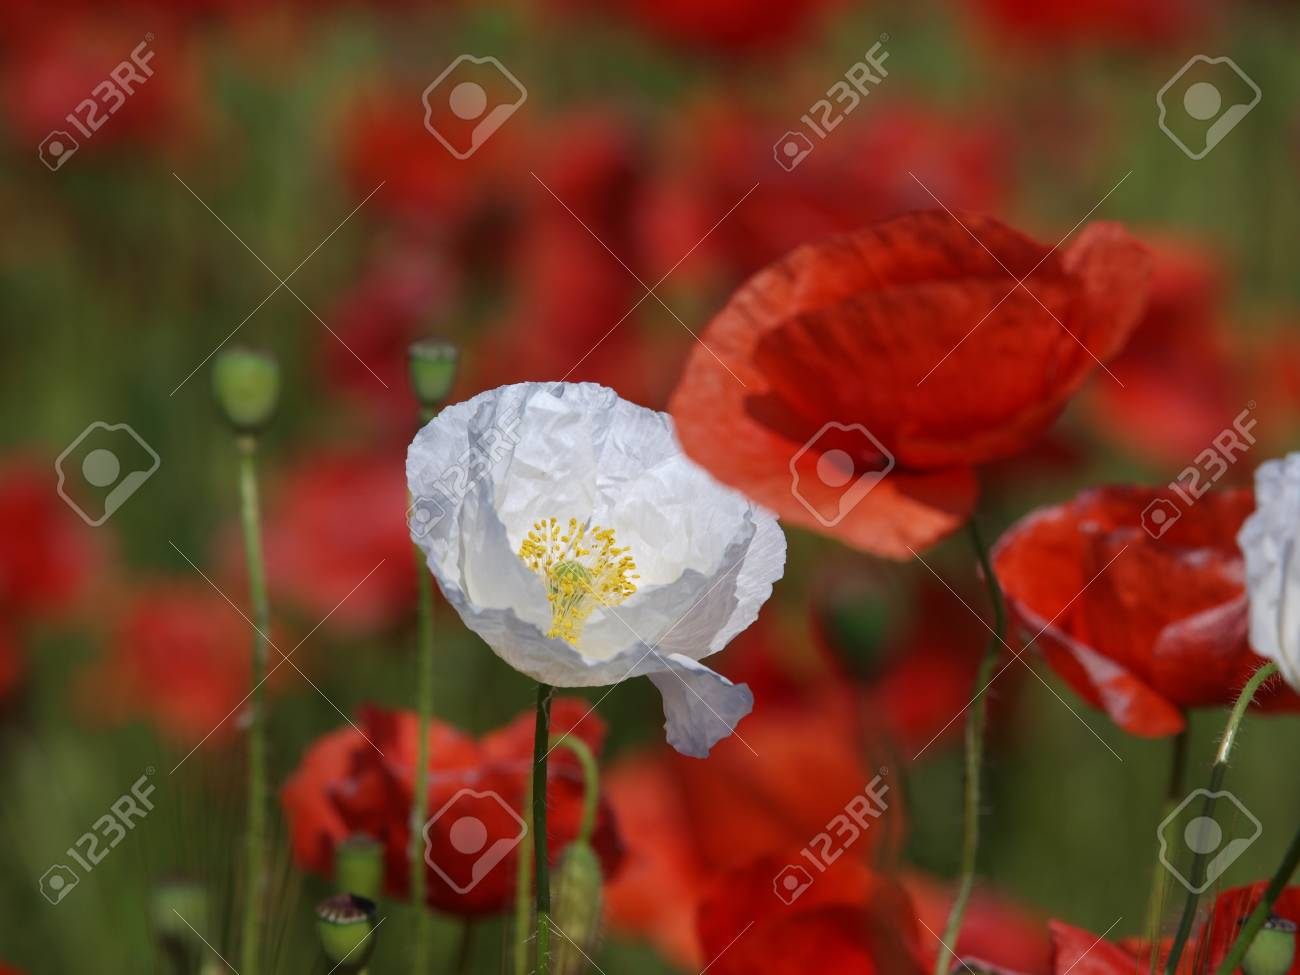 Poppy flower closeup we can observe two white poppy flowers stock poppy flower closeup we can observe two white poppy flowers surrounded by red ones mightylinksfo